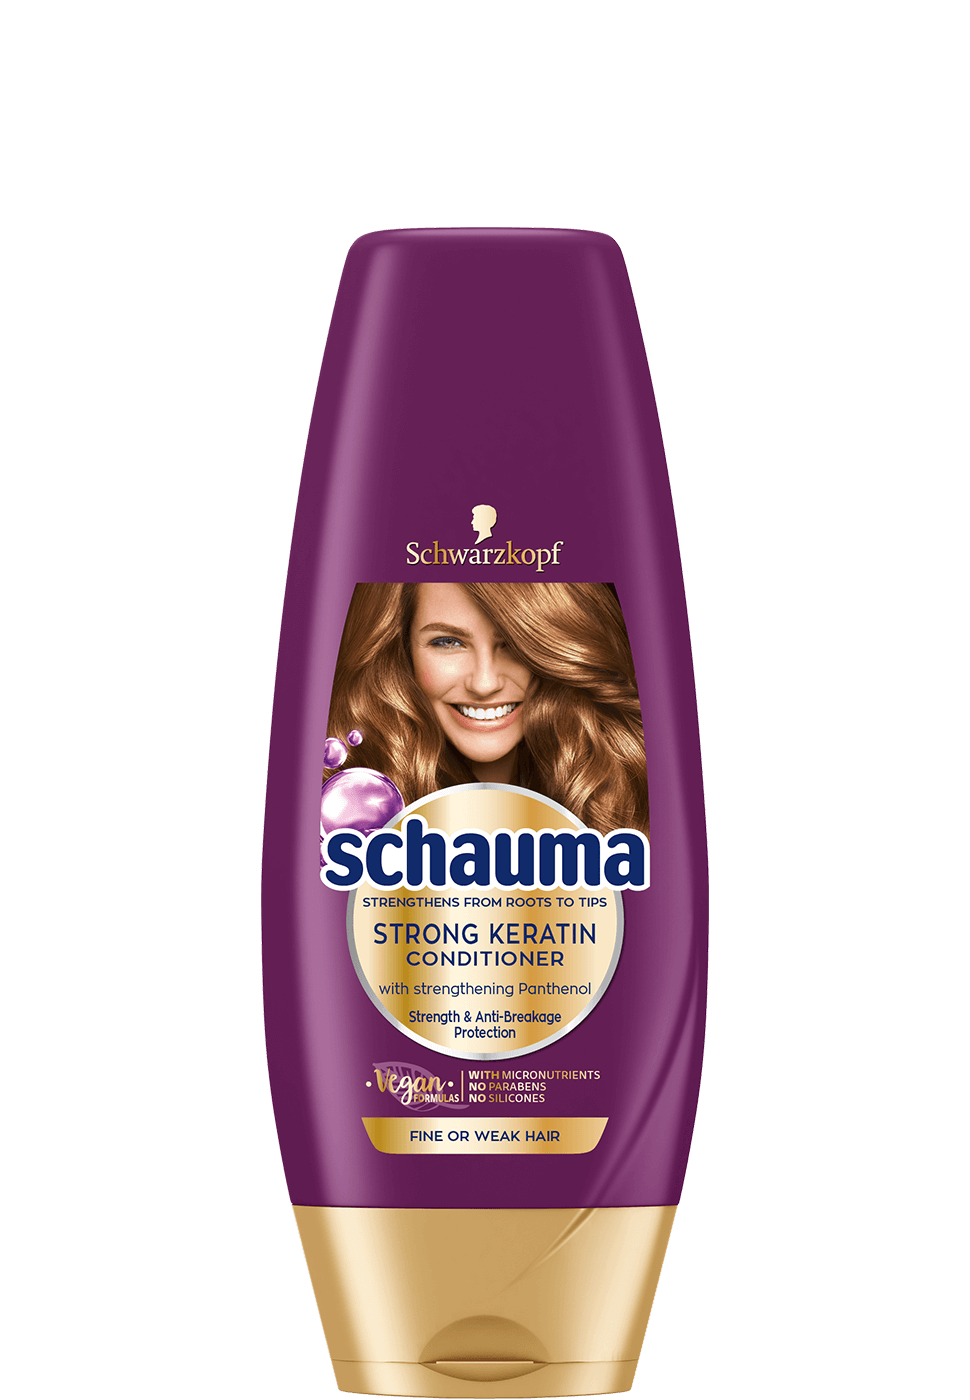 schauma_com_keratin_strong_conditioner_970x1400